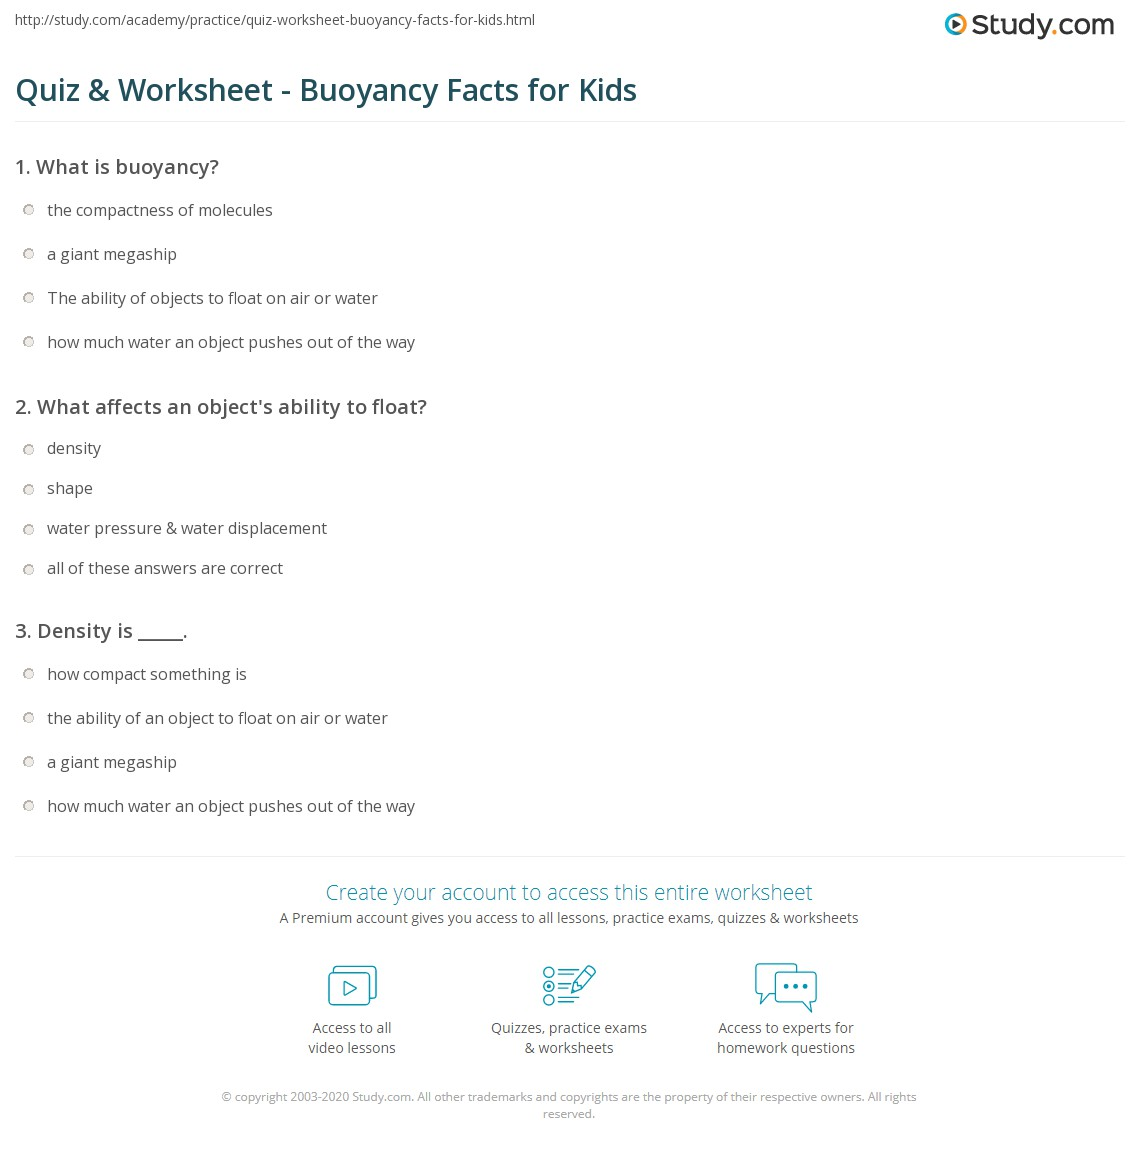 quiz worksheet buoyancy facts for kids. Black Bedroom Furniture Sets. Home Design Ideas